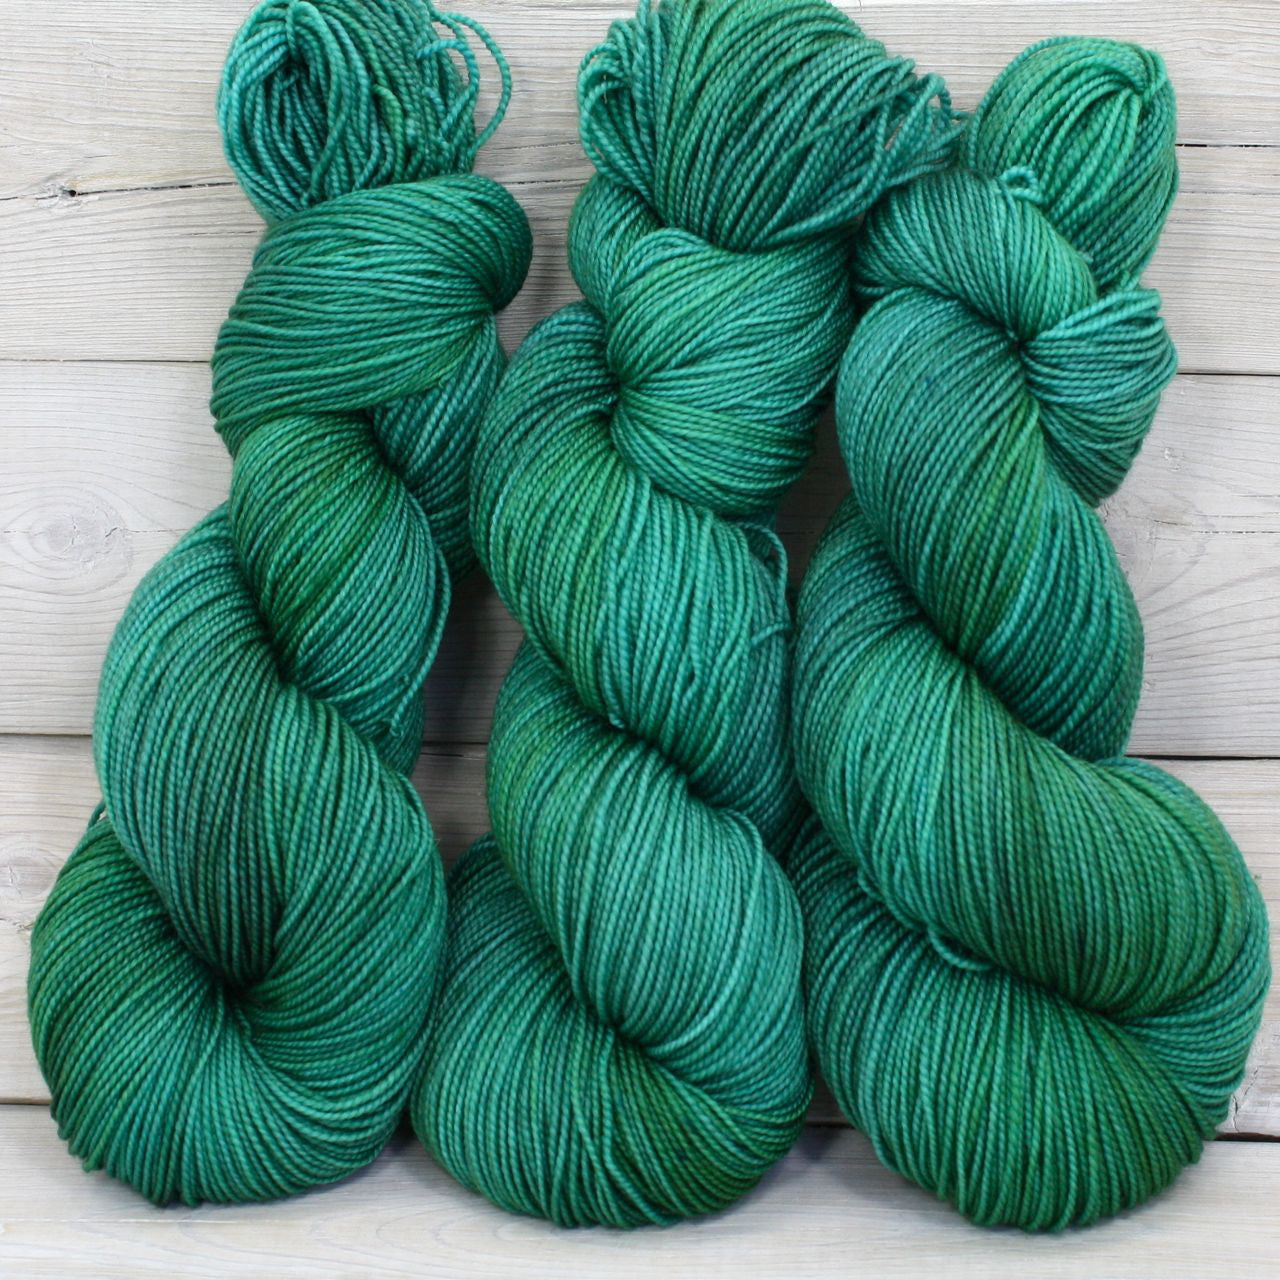 Celeste Yarn | Colorway: Viridian